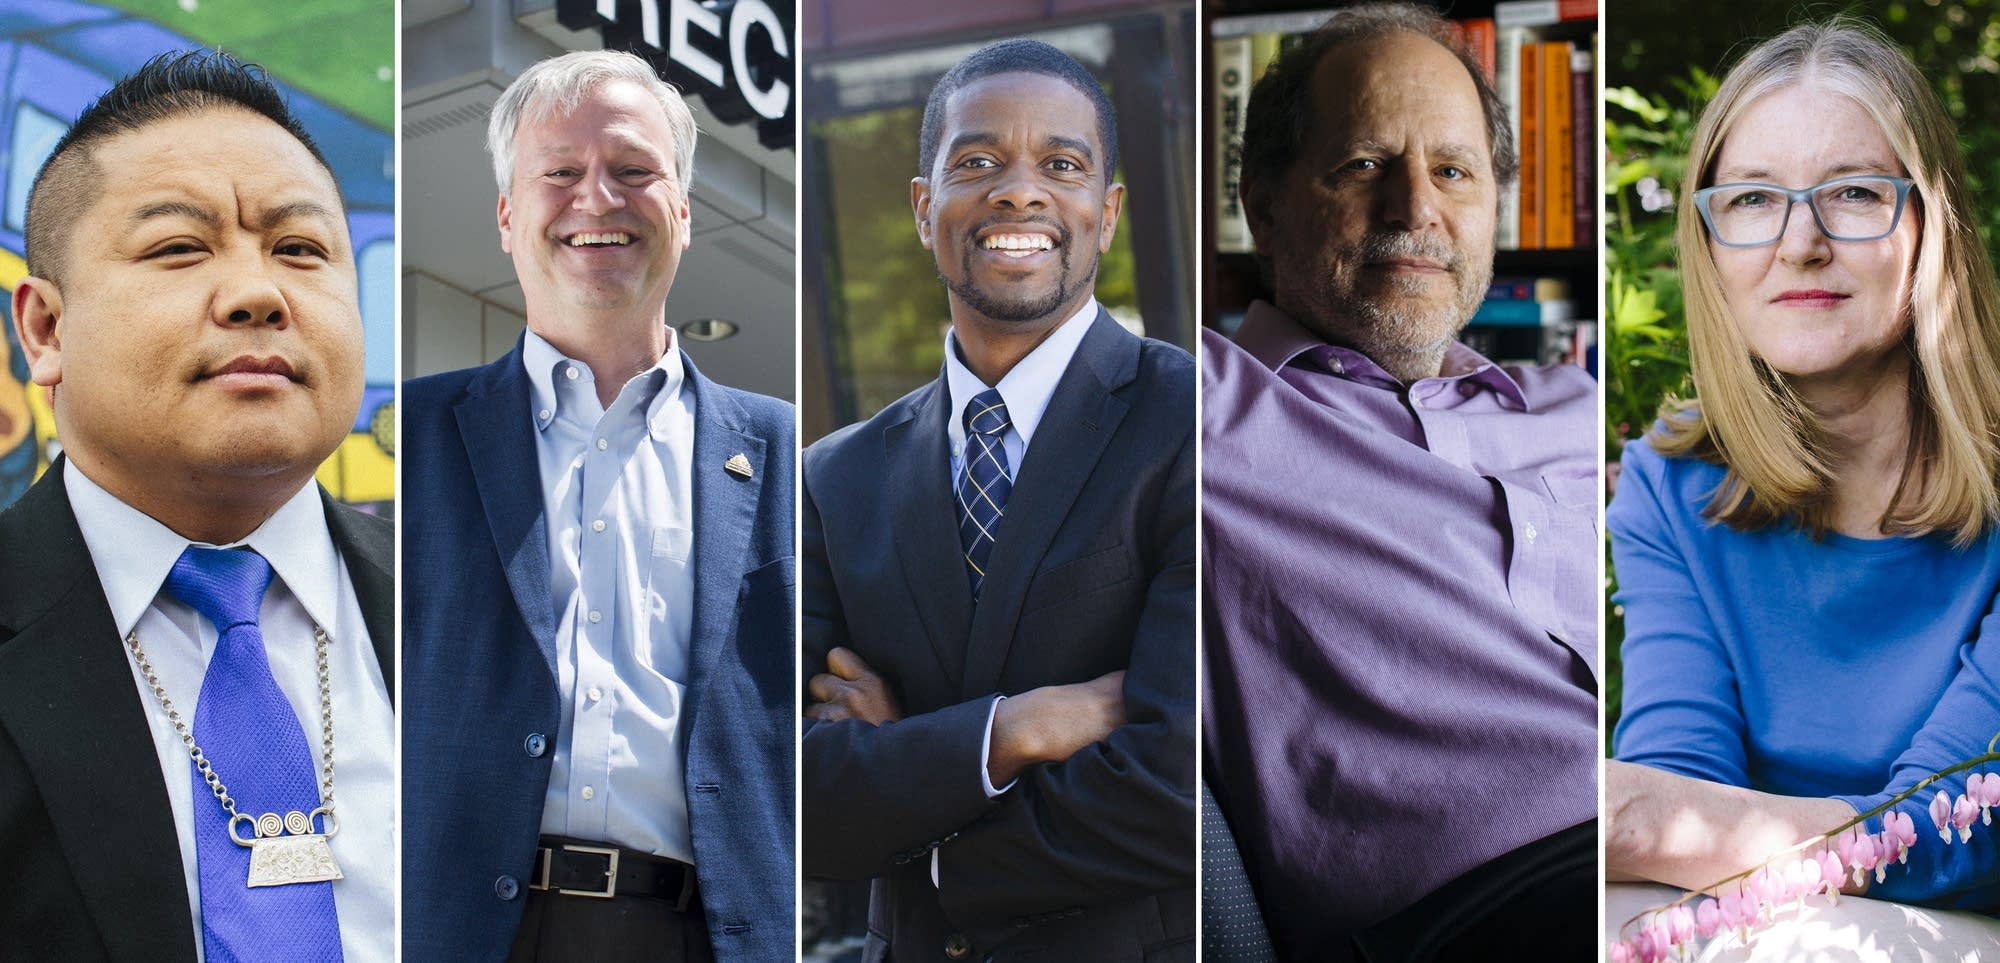 Candidates for St. Paul mayor Thao, Harris, Carter, Goldstein and Dickinson